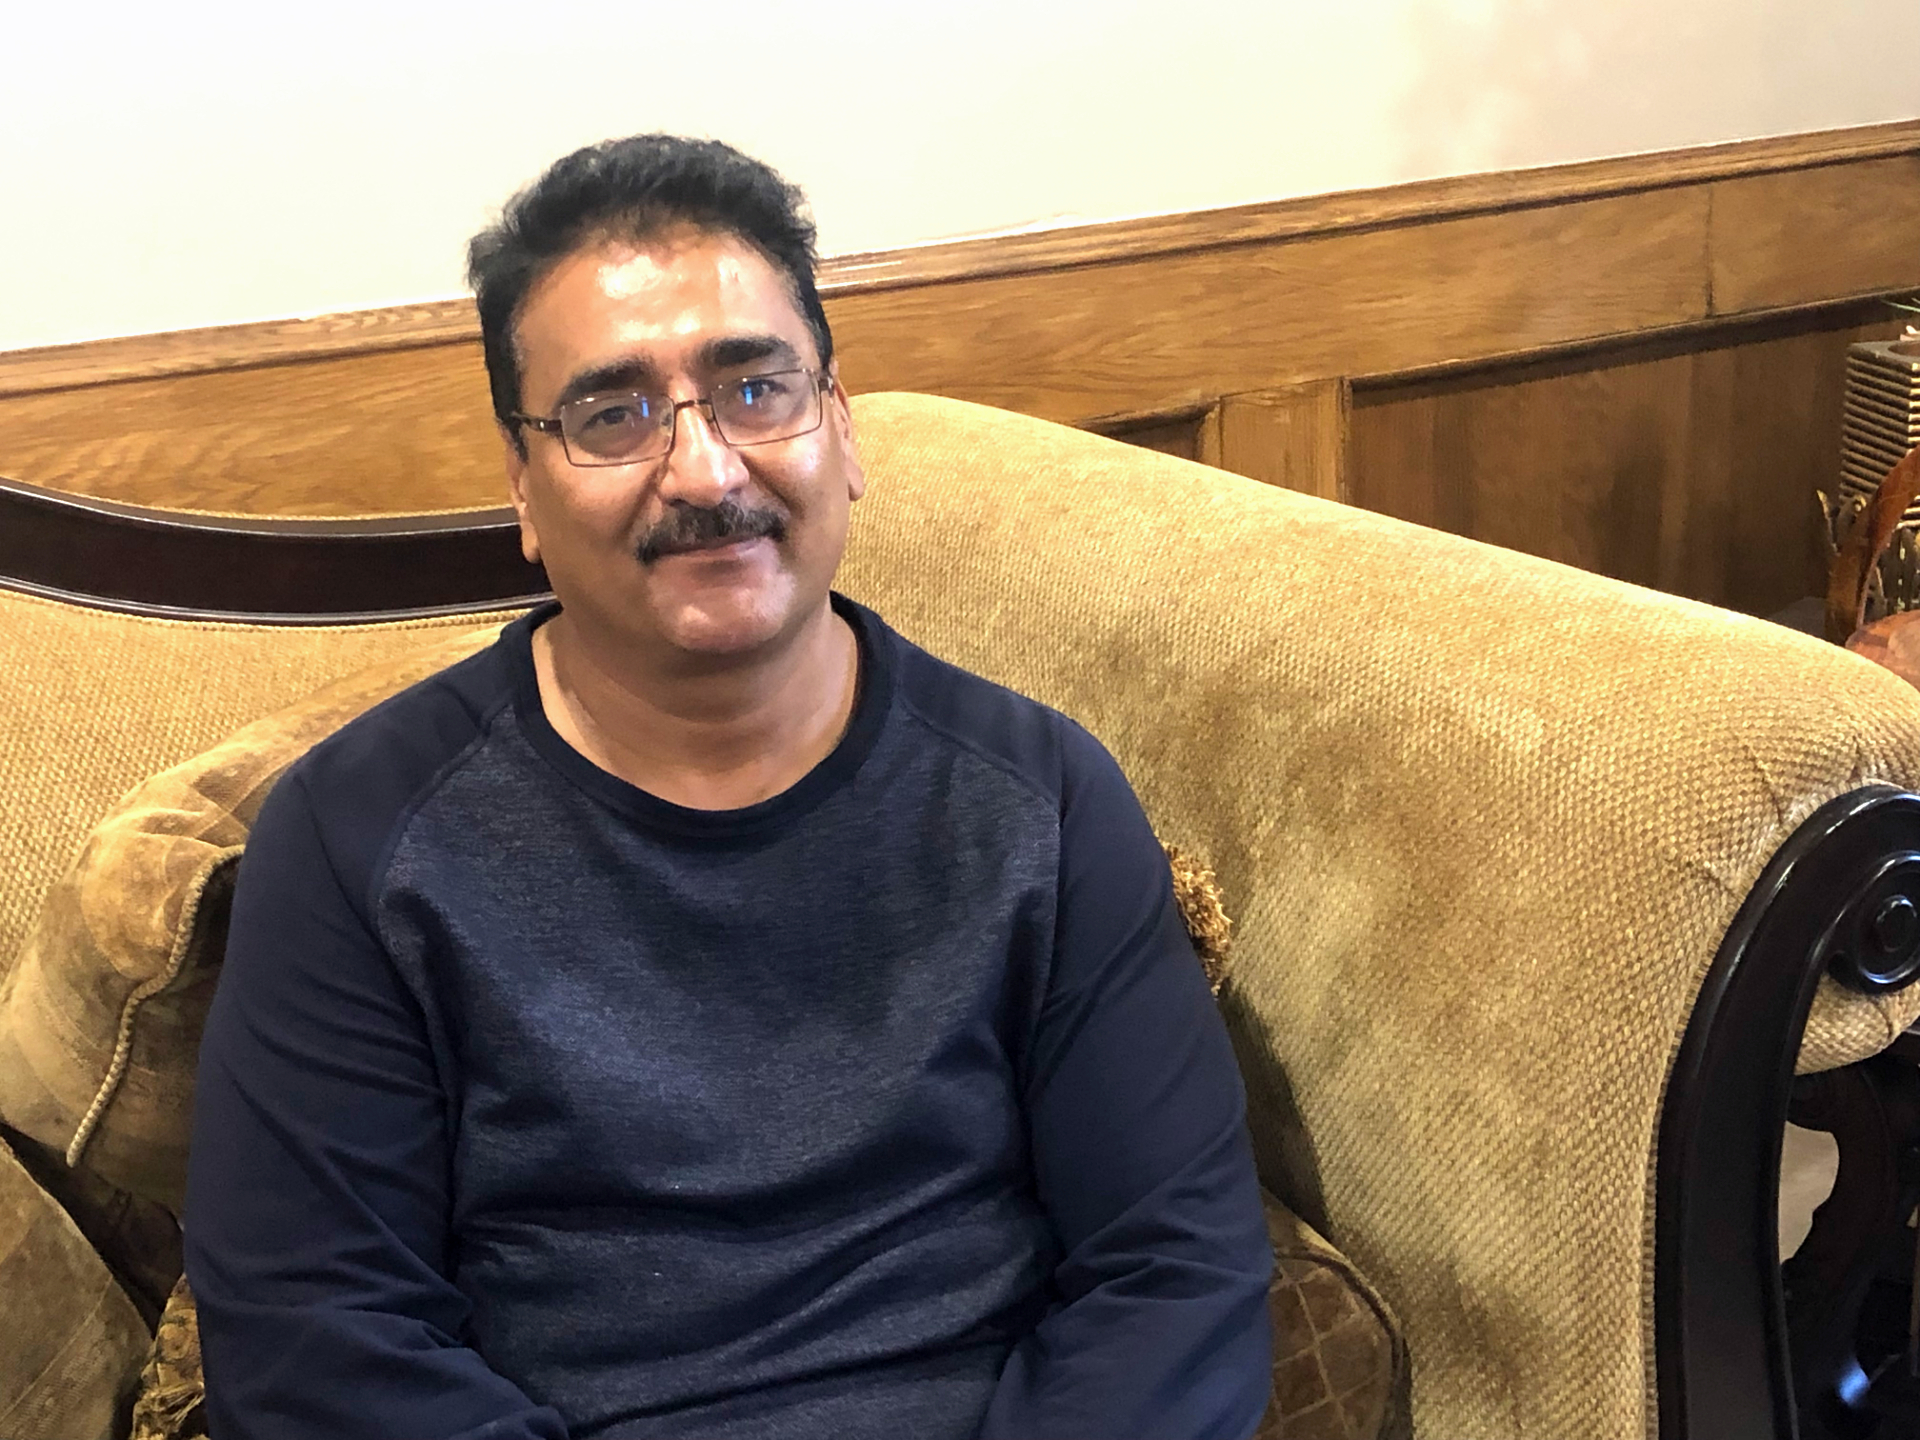 Tariq Chaudhry says he signed up hundreds of members without them paying, which is against the UCP rules. (Carolyn Dunn/CBC)